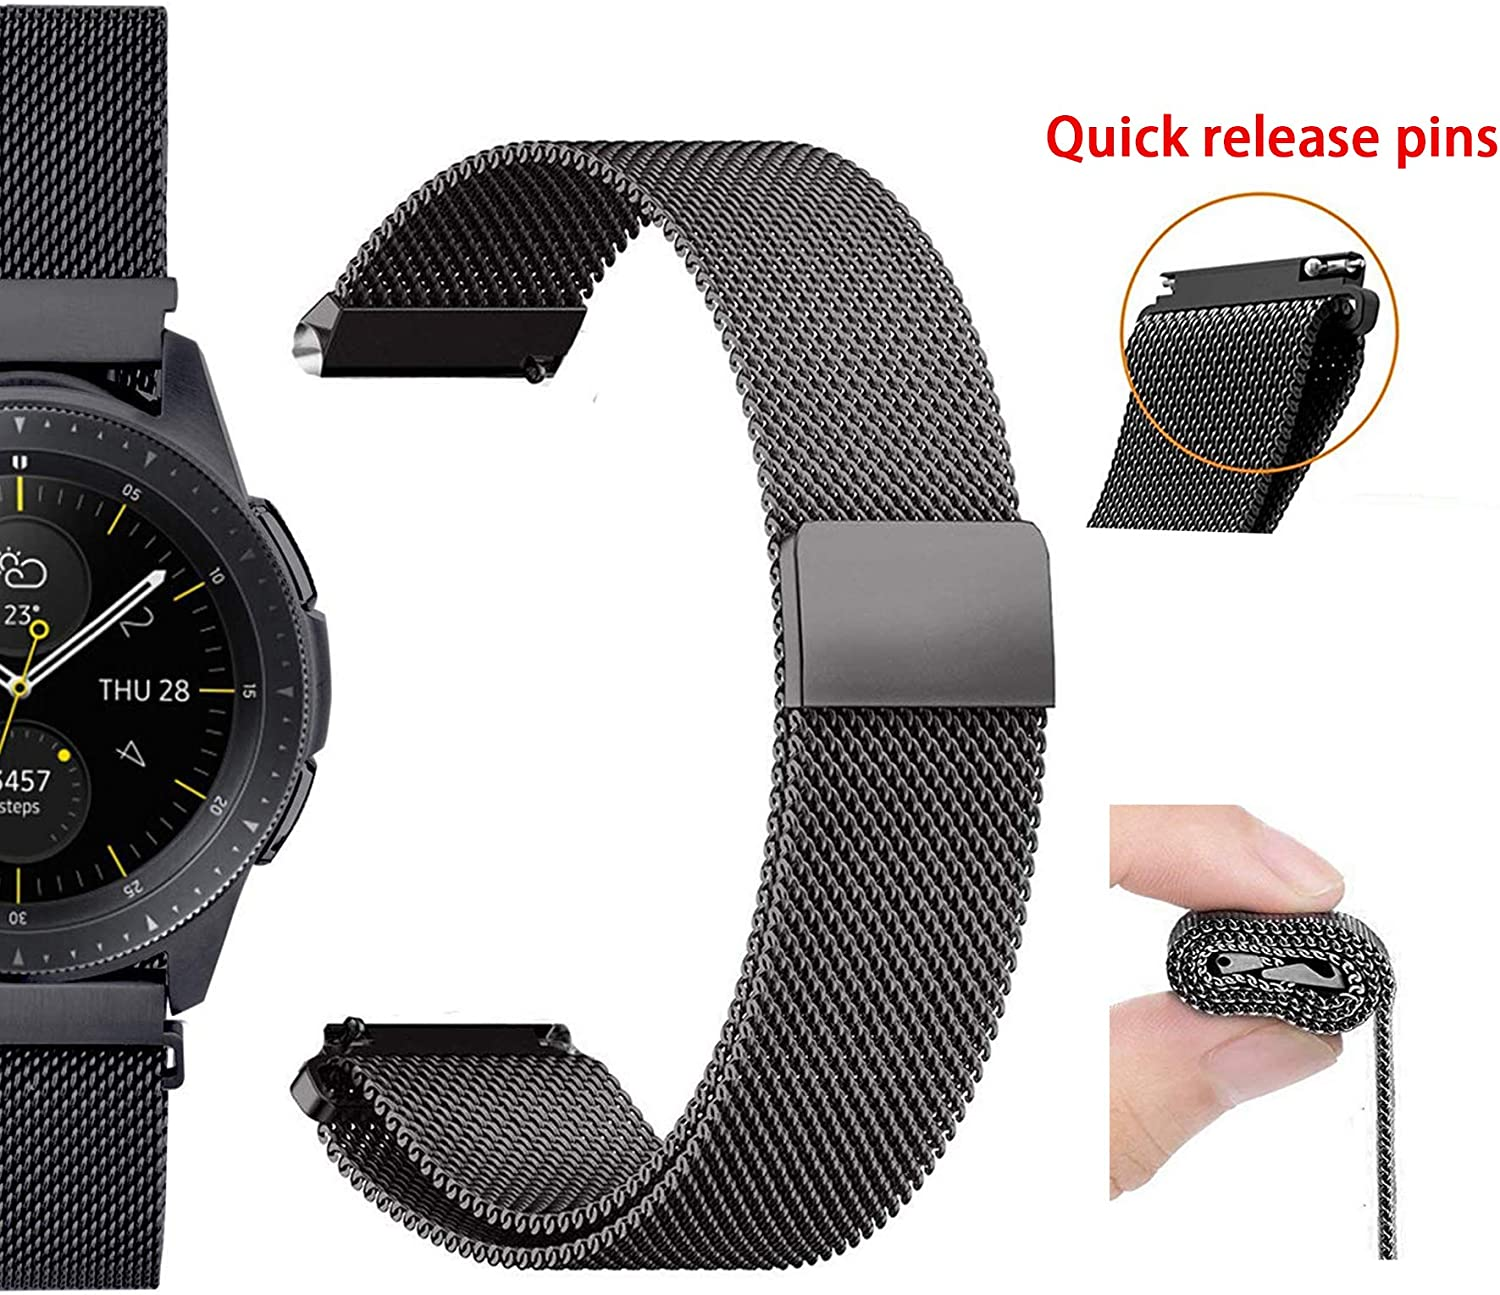 20mm Watch Bands Compatible with Samsung Galaxy Watch 42mm Amazfit Bip Ticwatch E/2, Metal Stainless Steel Replacement Sport Strap for All Other Smart ...